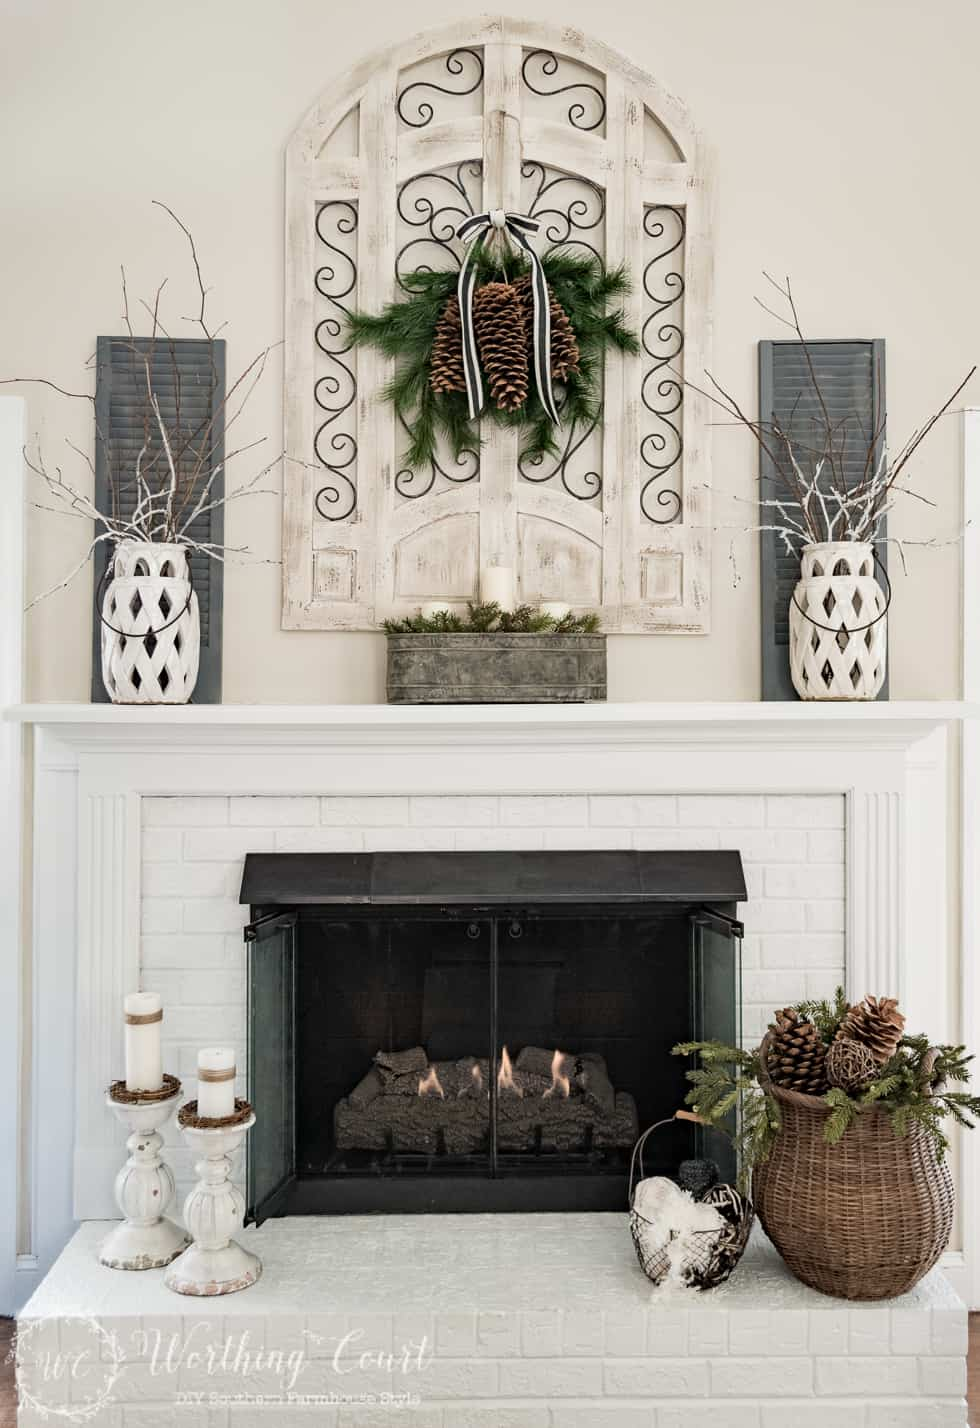 My Winter Fireplace And Mantel || Worthing Court